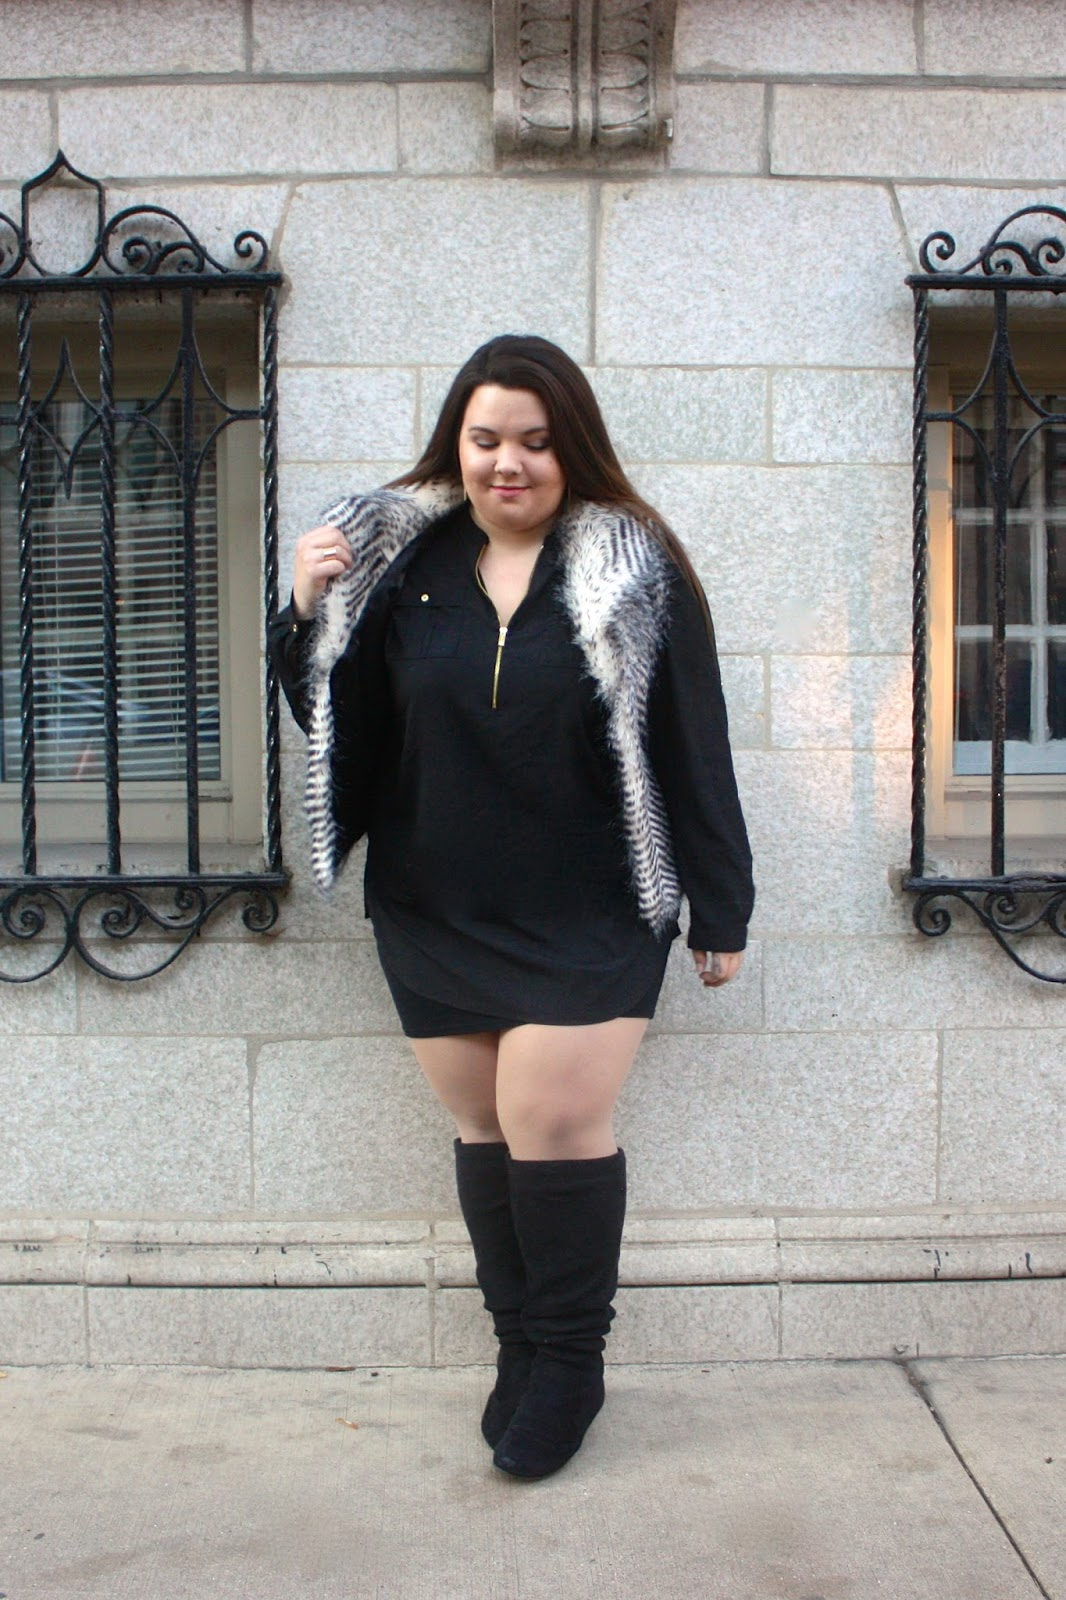 natalie craig, devon rachel, devon cruse, fur vest, how to wear a fur vest, how to wear fur, natalie in the city, chicago, winter trends 2015, plus size fashion blogger, plus size, ps fashion, ootd, blogger in fur, plus size faux fur